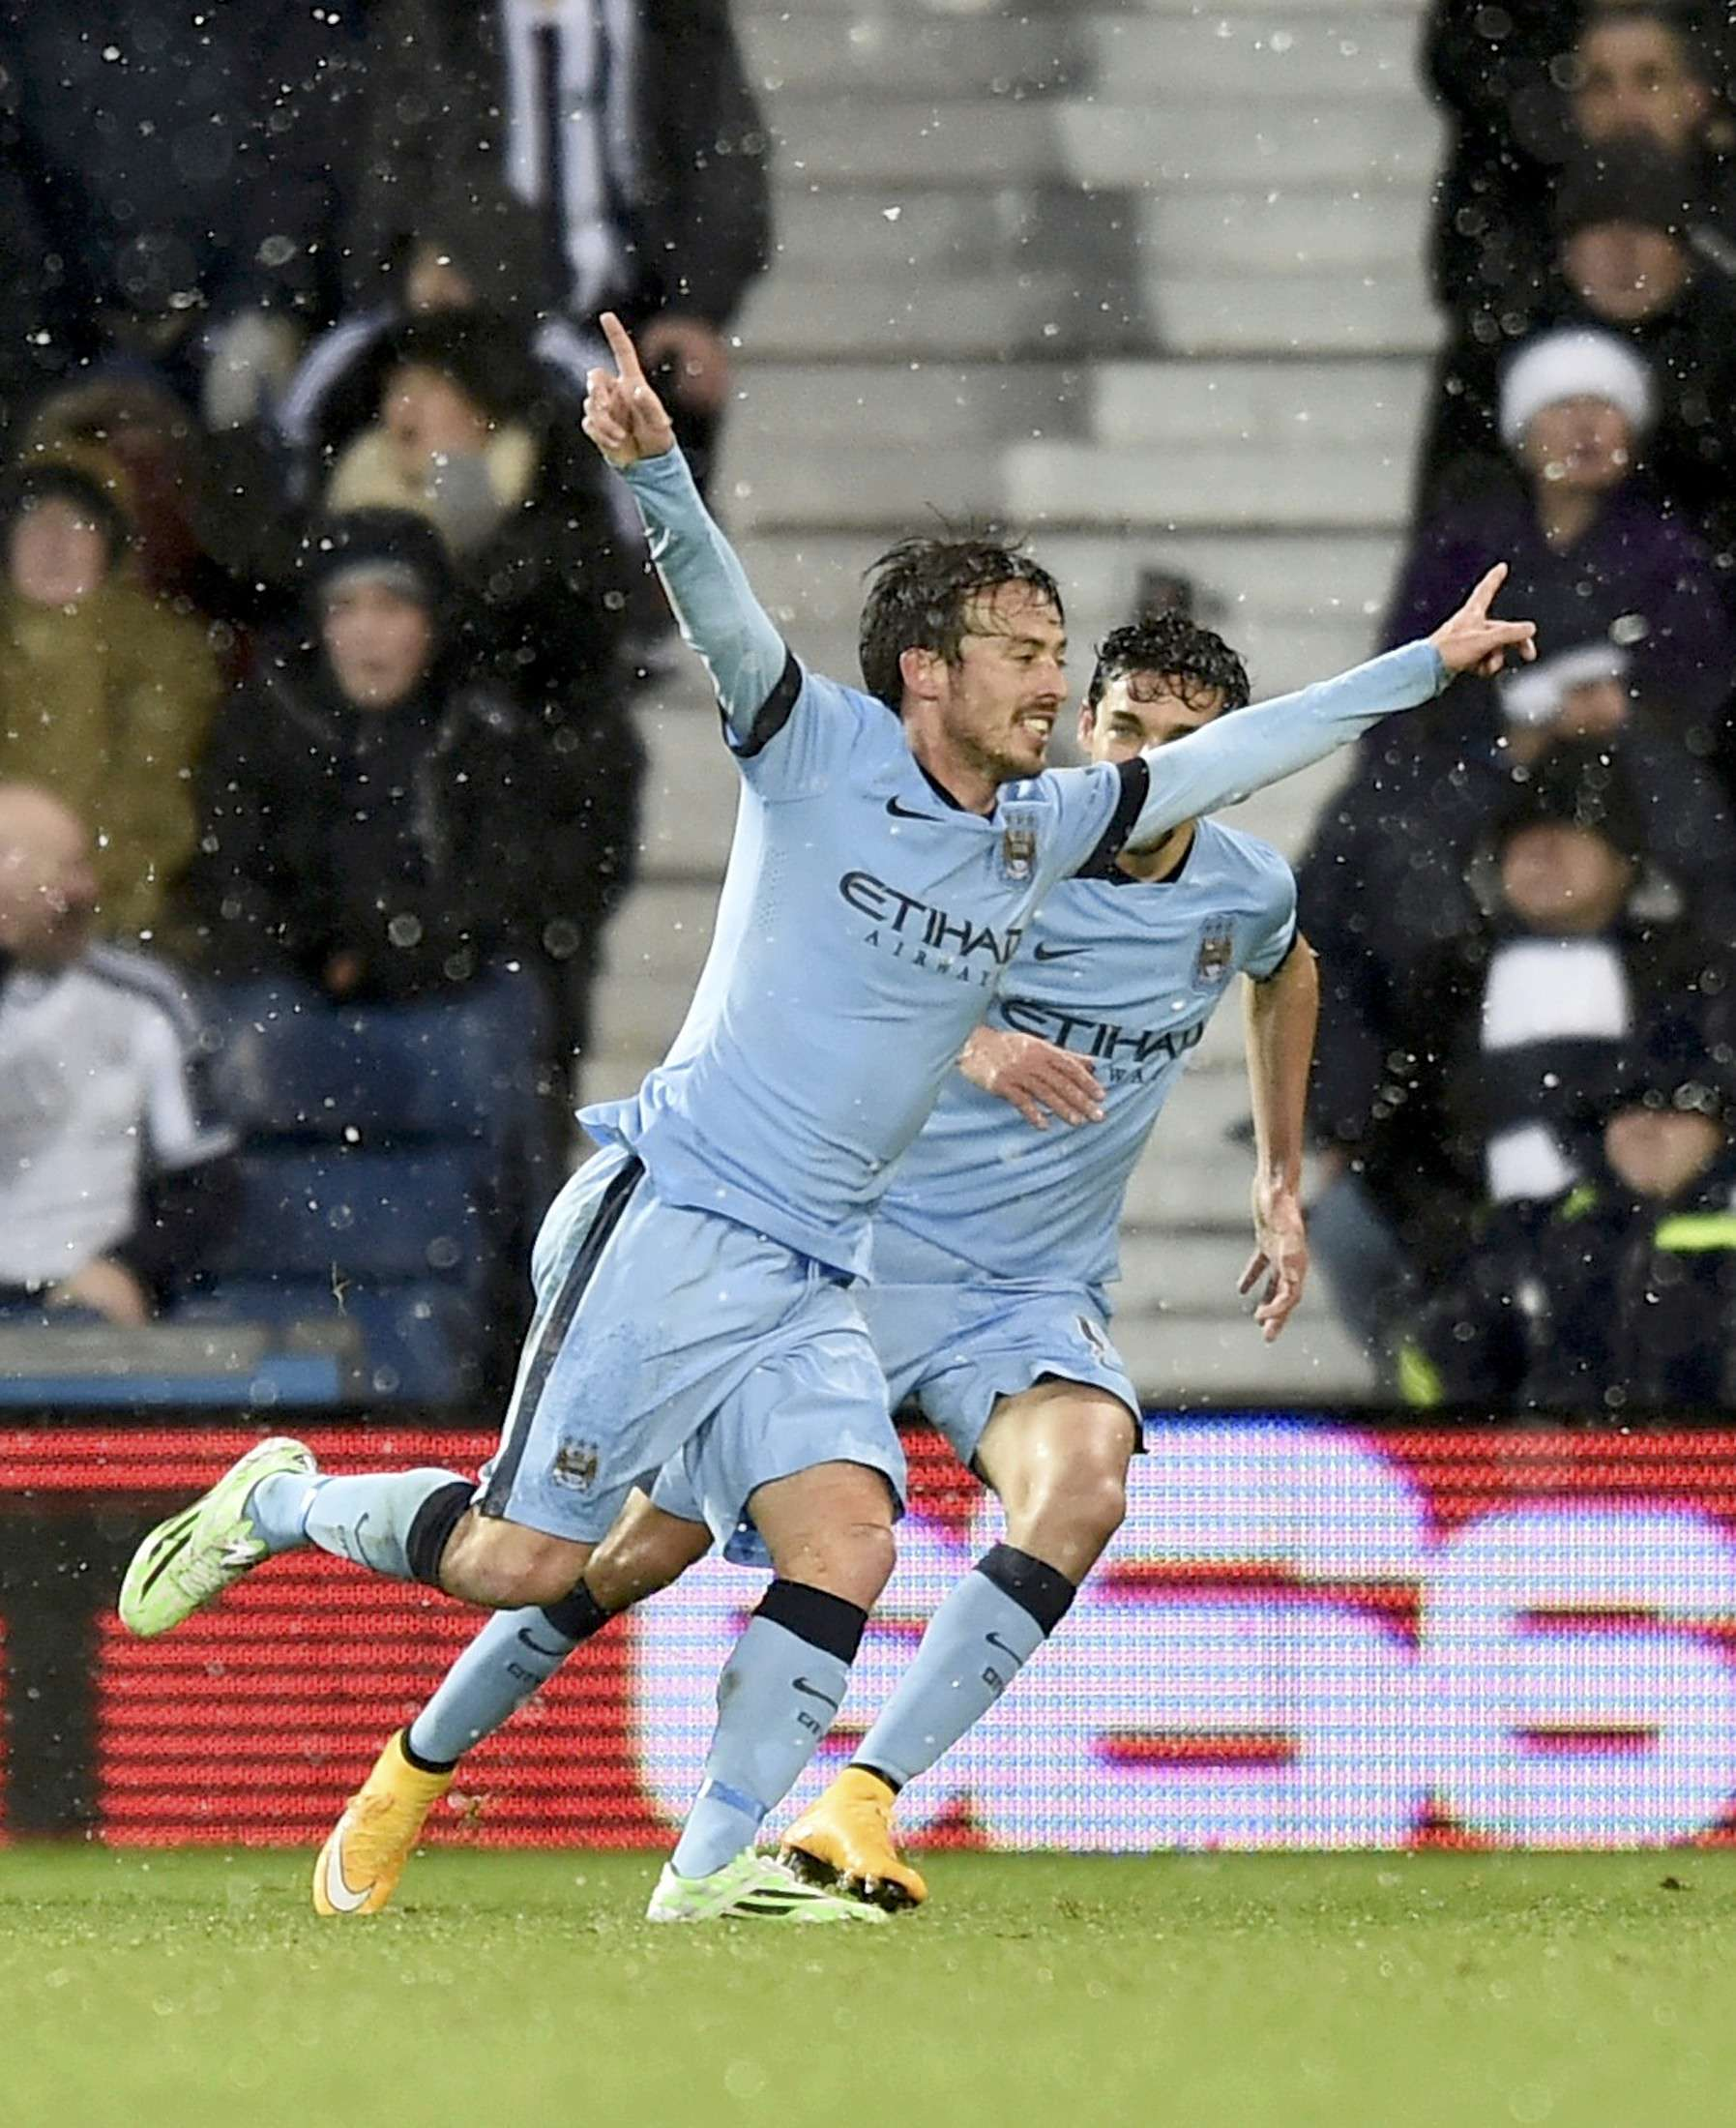 Manchester City's David Silva celebrates after scoring a goal during their English Premier League soccer match against West Bromwich Albion at The Hawthorns in West Bromwich, central England December 26, 2014. REUTERS/Toby Melville (BRITAIN - Tags: SOCCER SPORT) FOR EDITORIAL USE ONLY. NOT FOR SALE FOR MARKETING OR ADVERTISING CAMPAIGNS. EDITORIAL USE ONLY. NO USE WITH UNAUTHORIZED AUDIO, VIDEO, DATA, FIXTURE LISTS, CLUB/LEAGUE LOGOS OR 'LIVE' SERVICES. ONLINE IN-MATCH USE LIMITED TO 45 IMAGES, NO VIDEO EMULATION. NO USE IN BETTING, GAMES OR SINGLE CLUB/LEAGUE/PLAYER PUBLICATIONS. Foto: TOBY MELVILLE/REUTERS